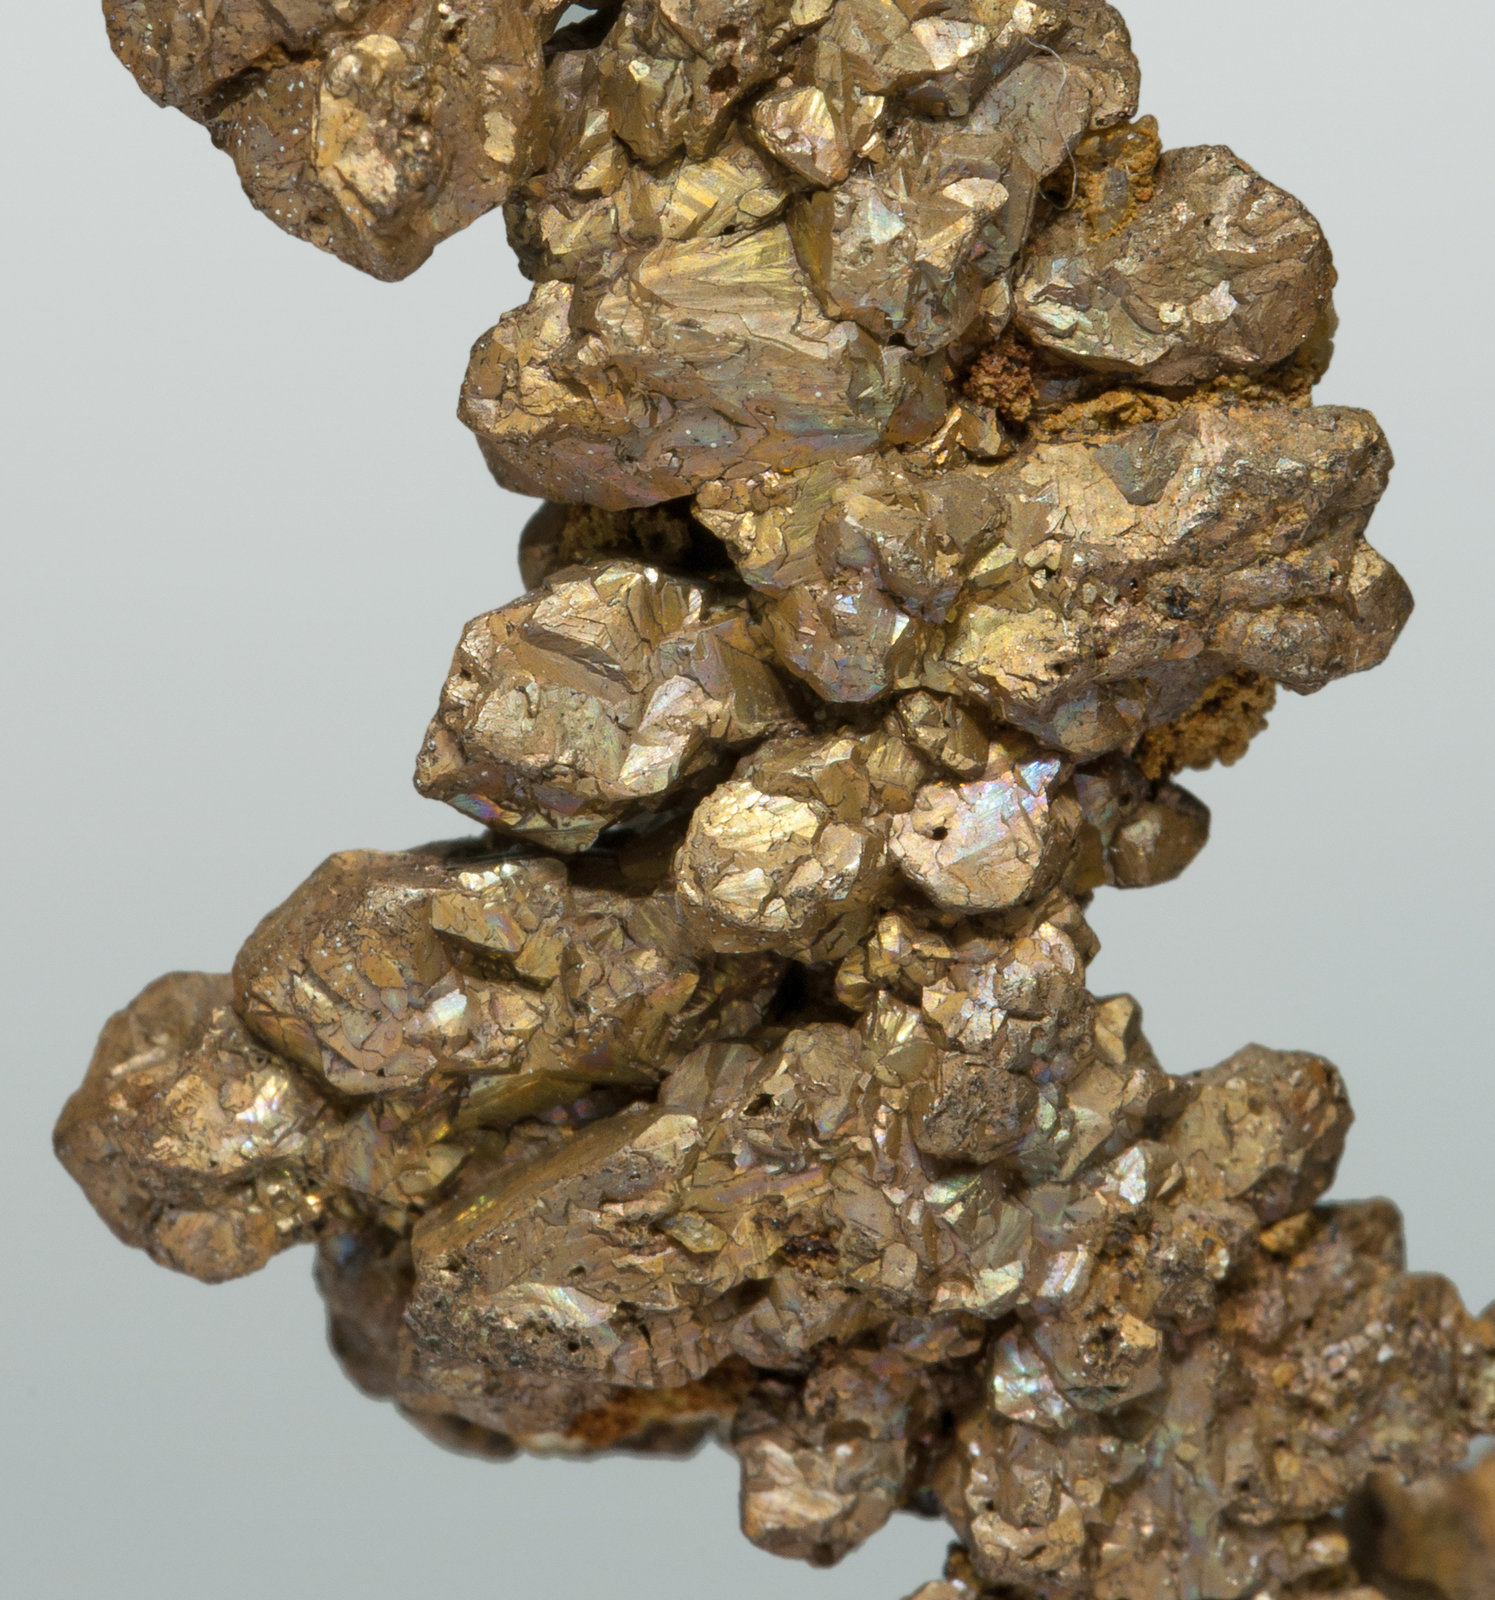 specimens/s_imagesY9/Copper-VA47Y9d.jpg